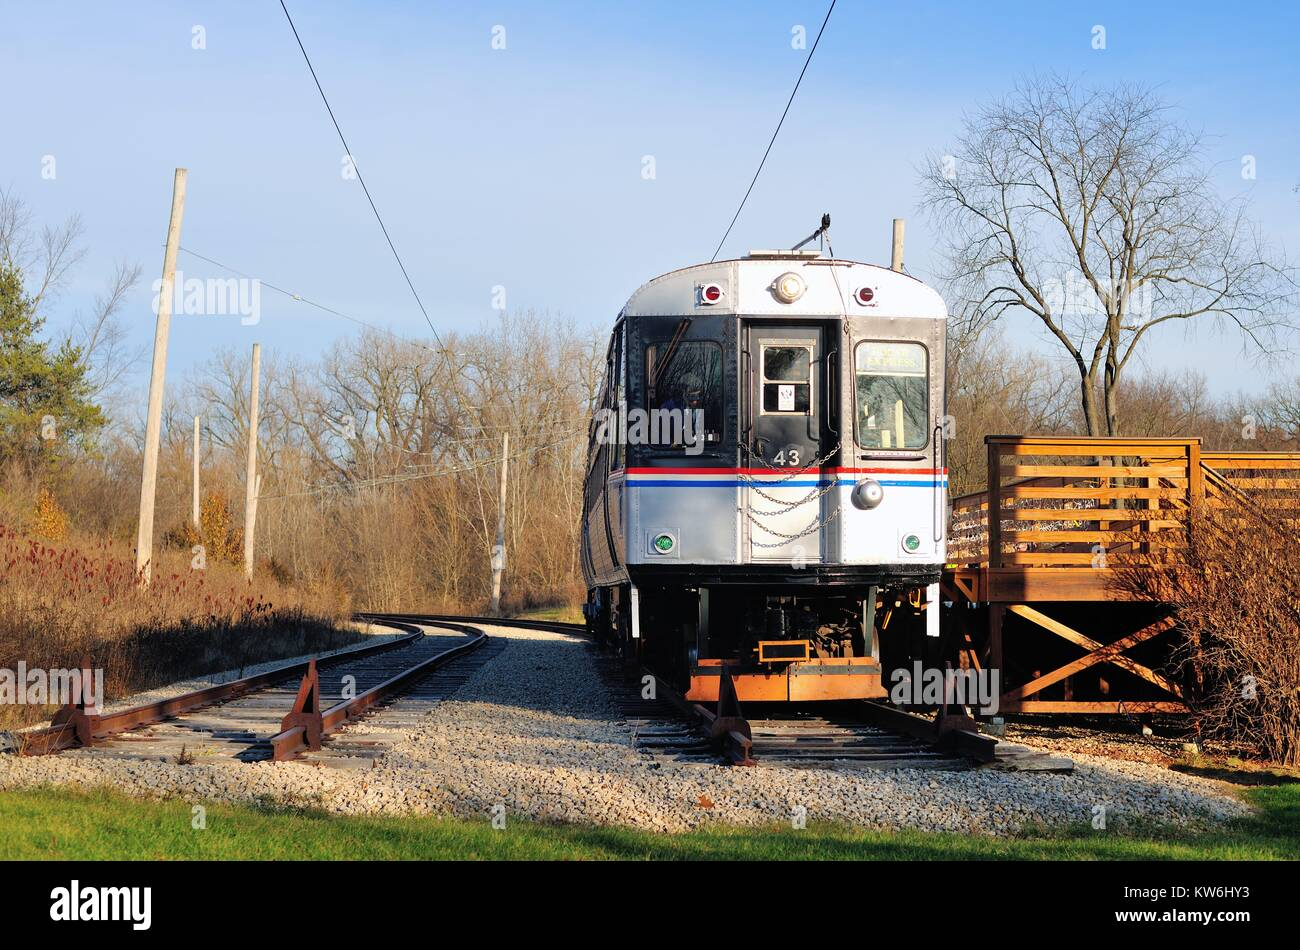 Car 43 at the end of track at the Fox River Trolley Museum in South Elgin, Illinois, USA. Stock Photo